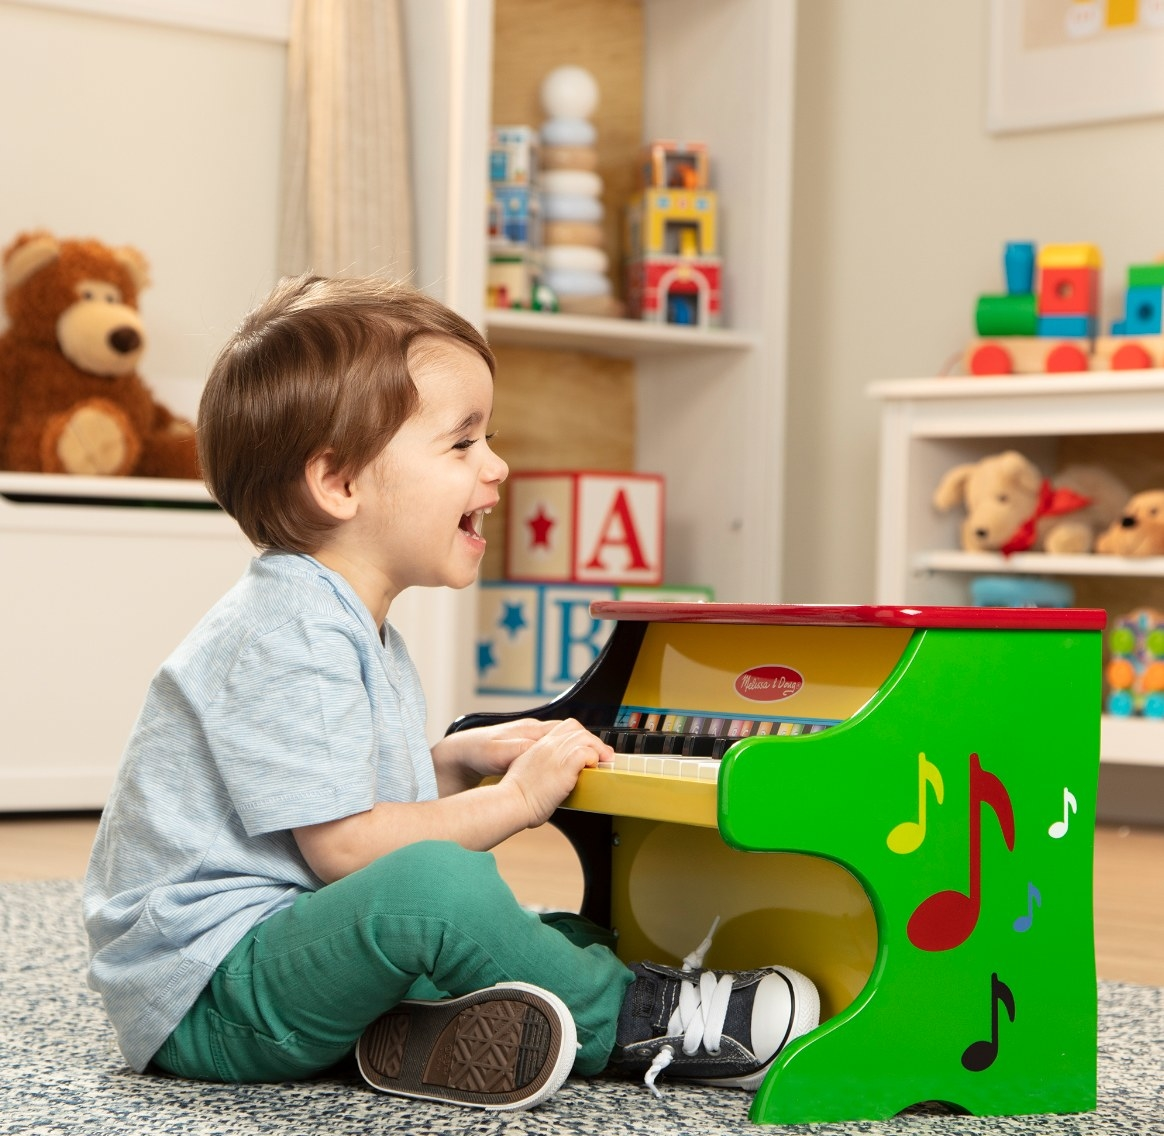 The learn-to-play piano in green, yellow, and red